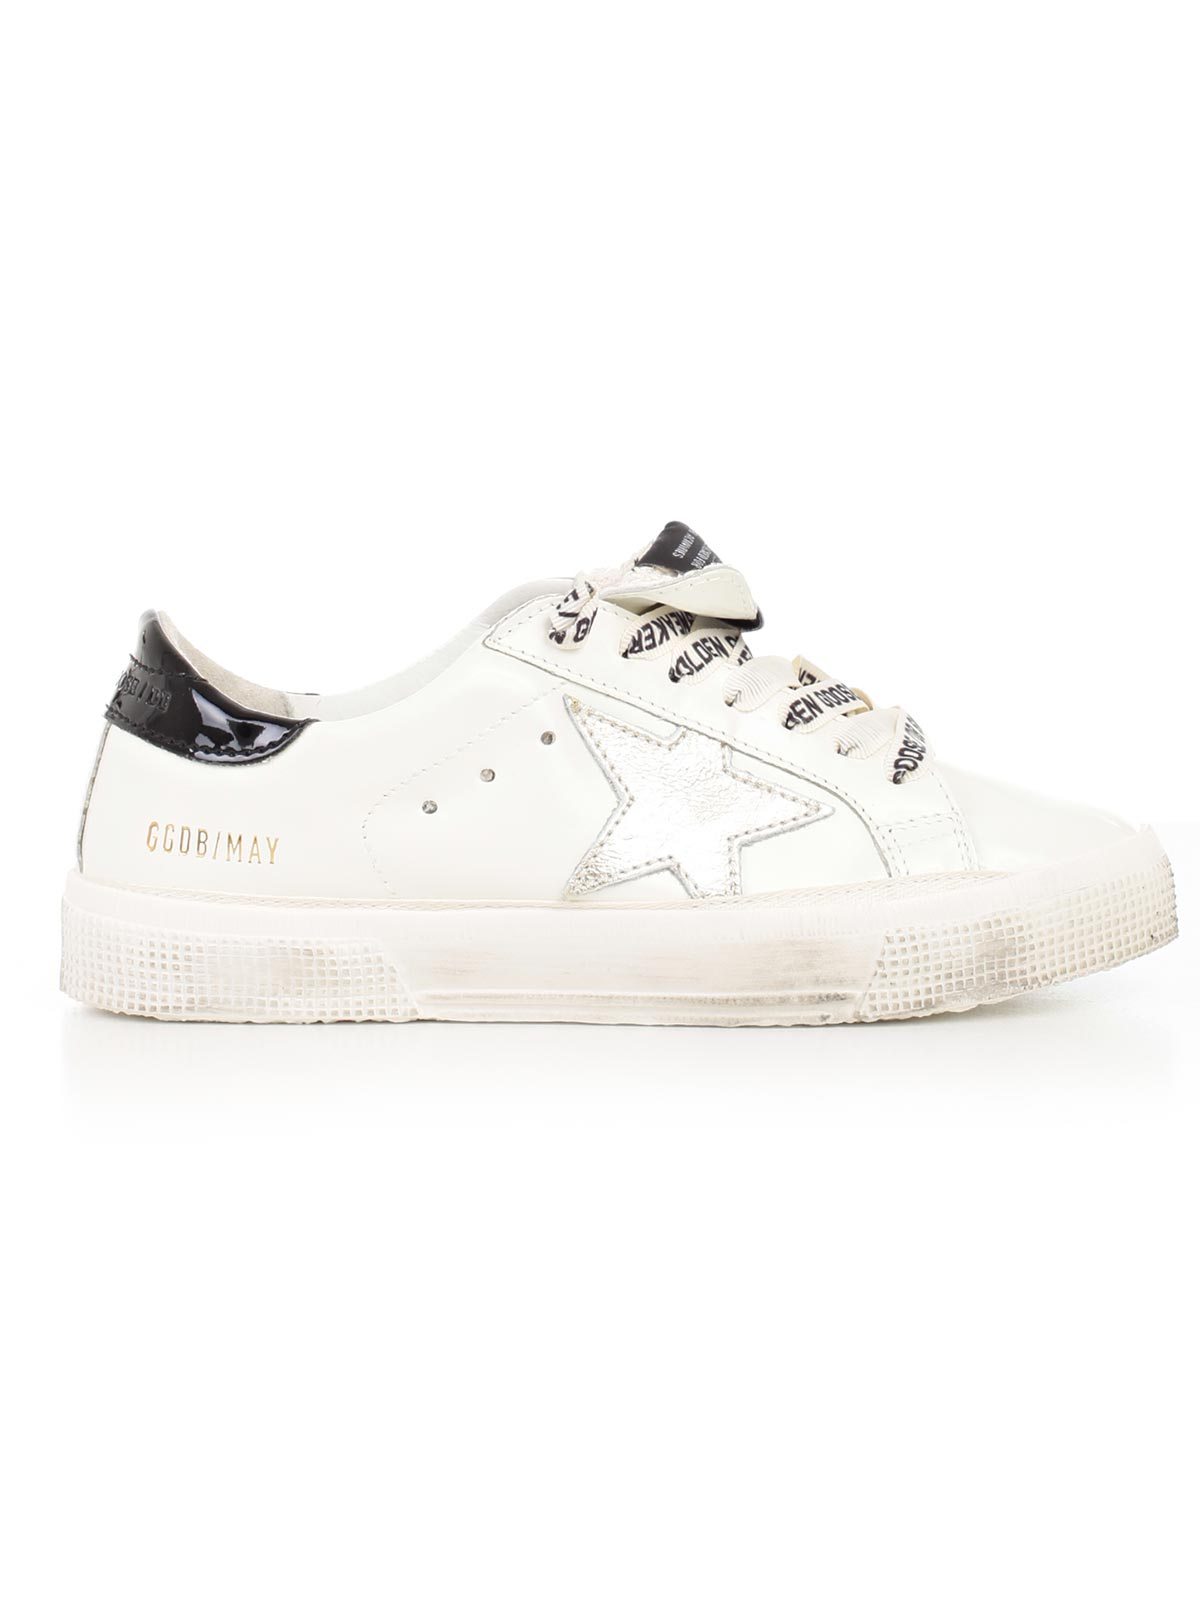 Picture of GOLDEN GOOSE DELUXE BRAND FOOTWEAR SCARPA SNEAKER MAY